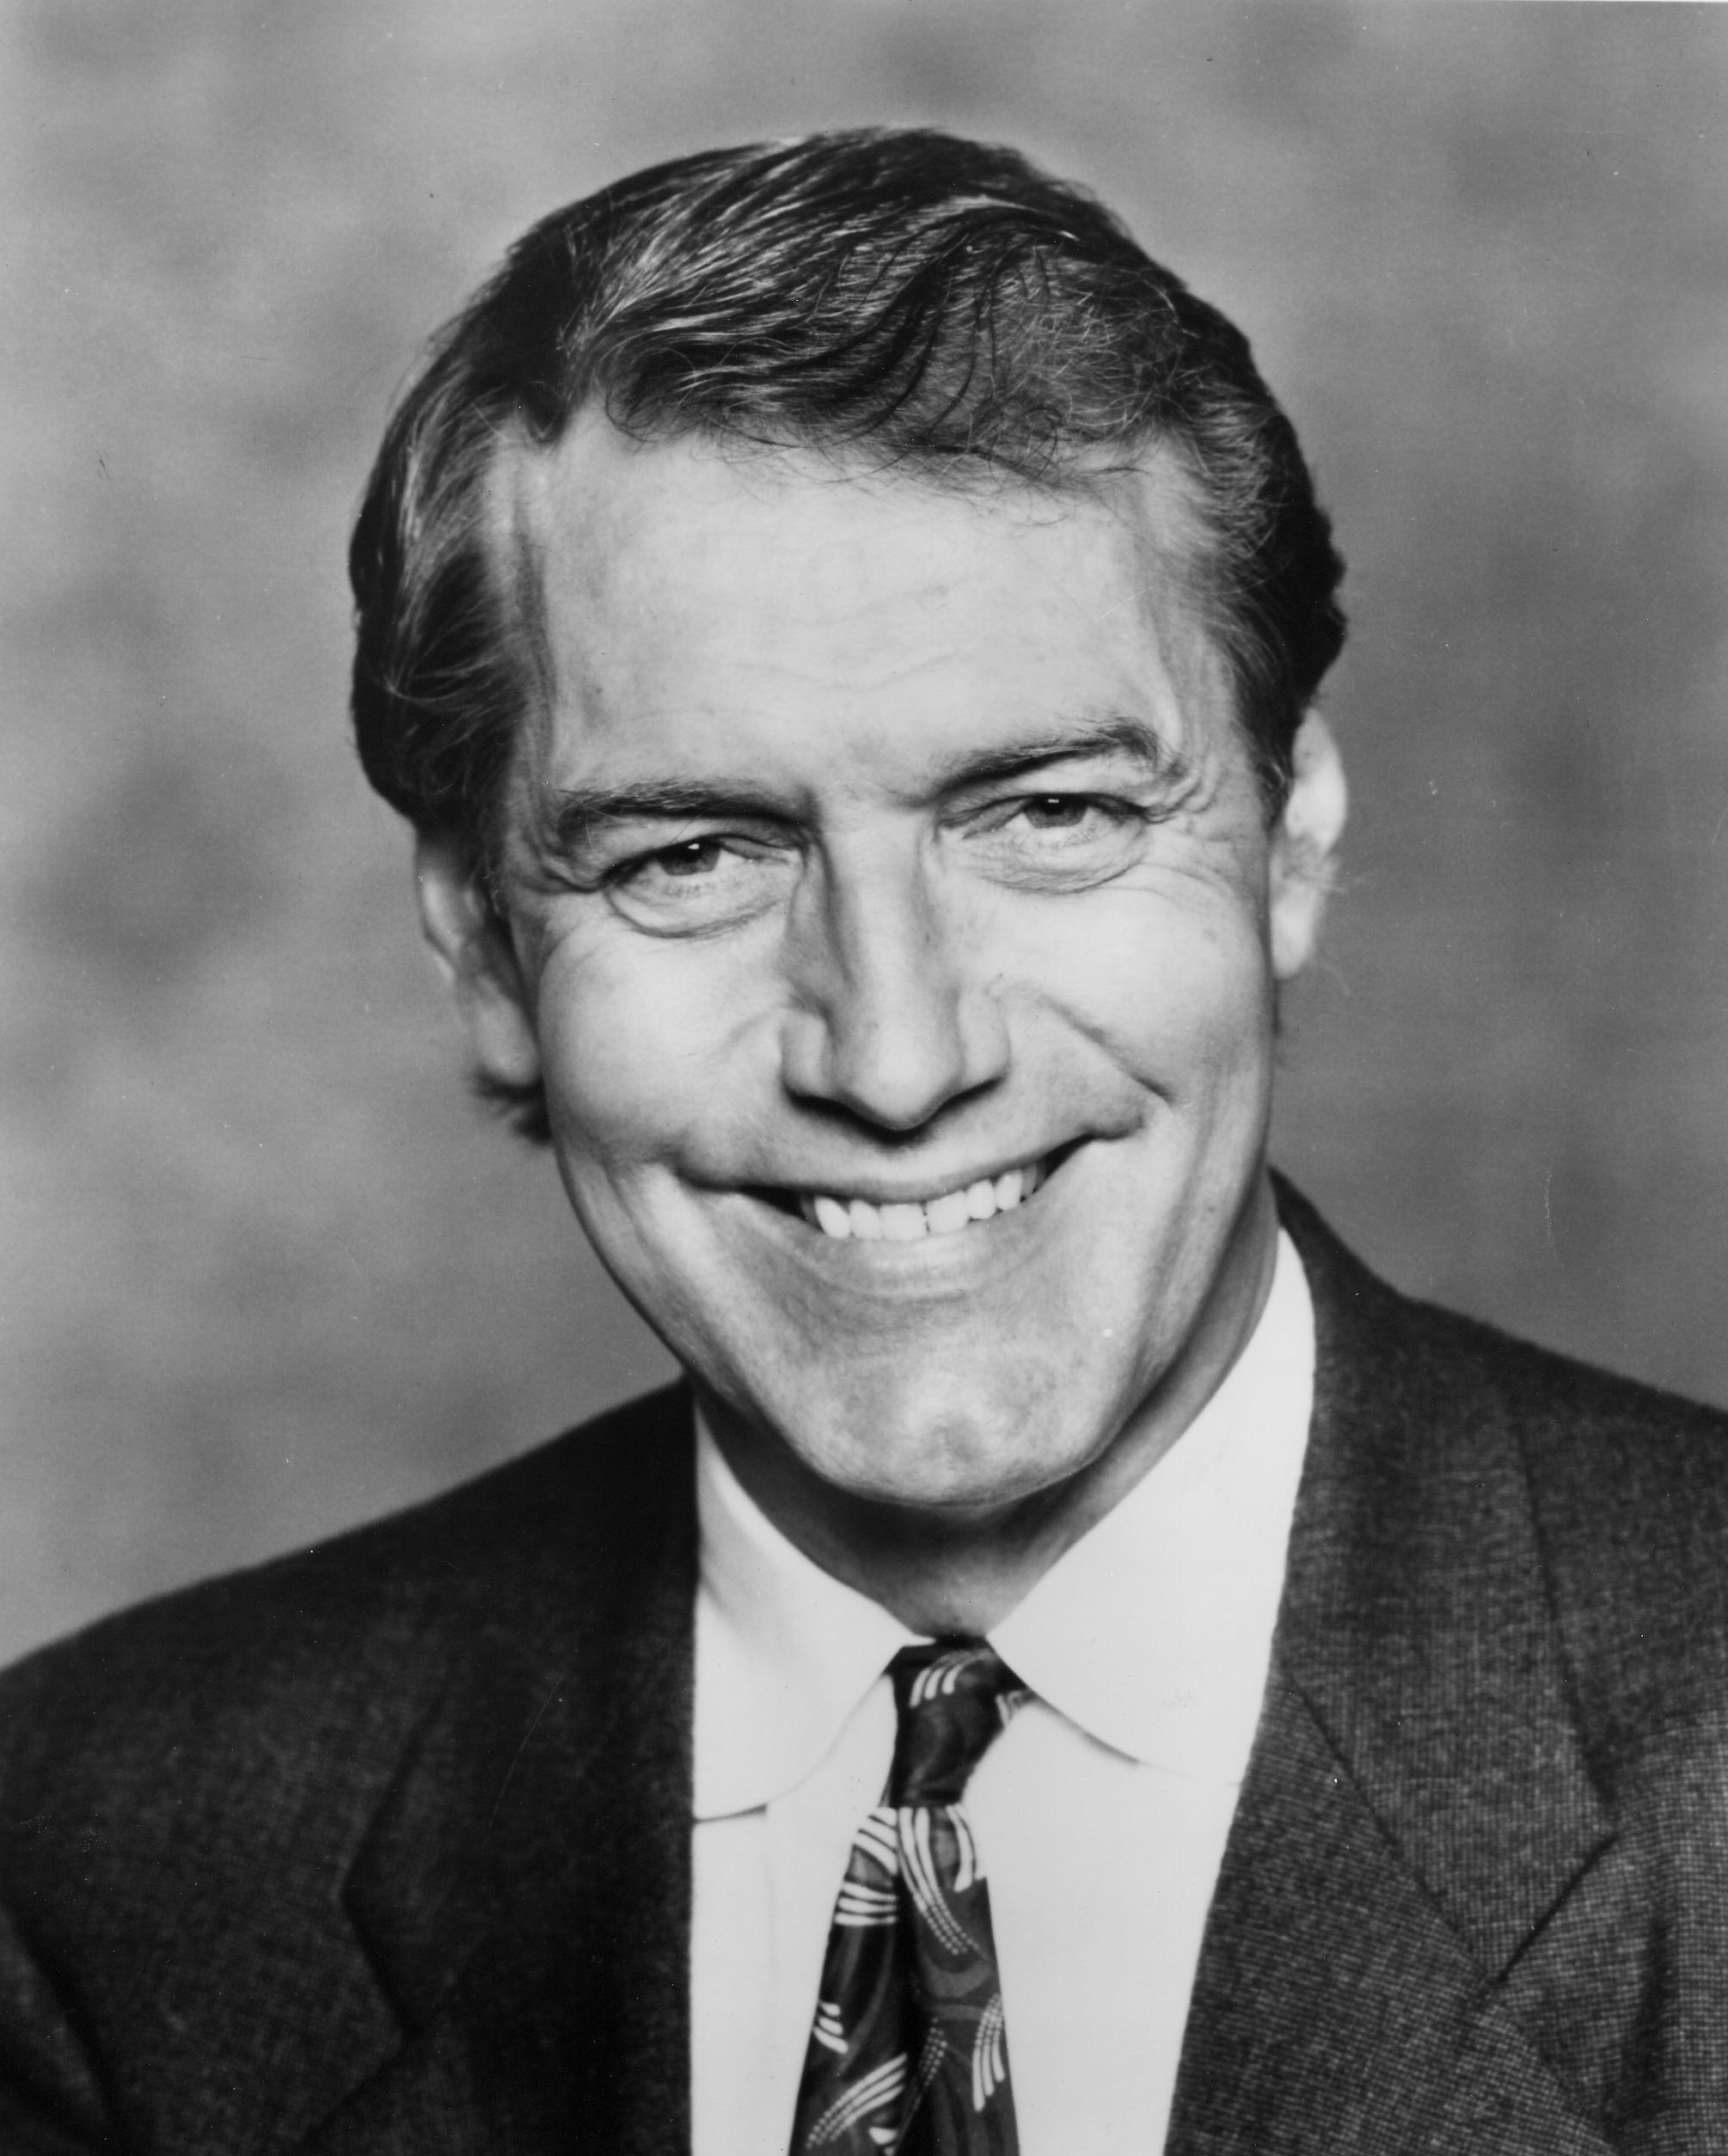 Charlie Rose's Headshot